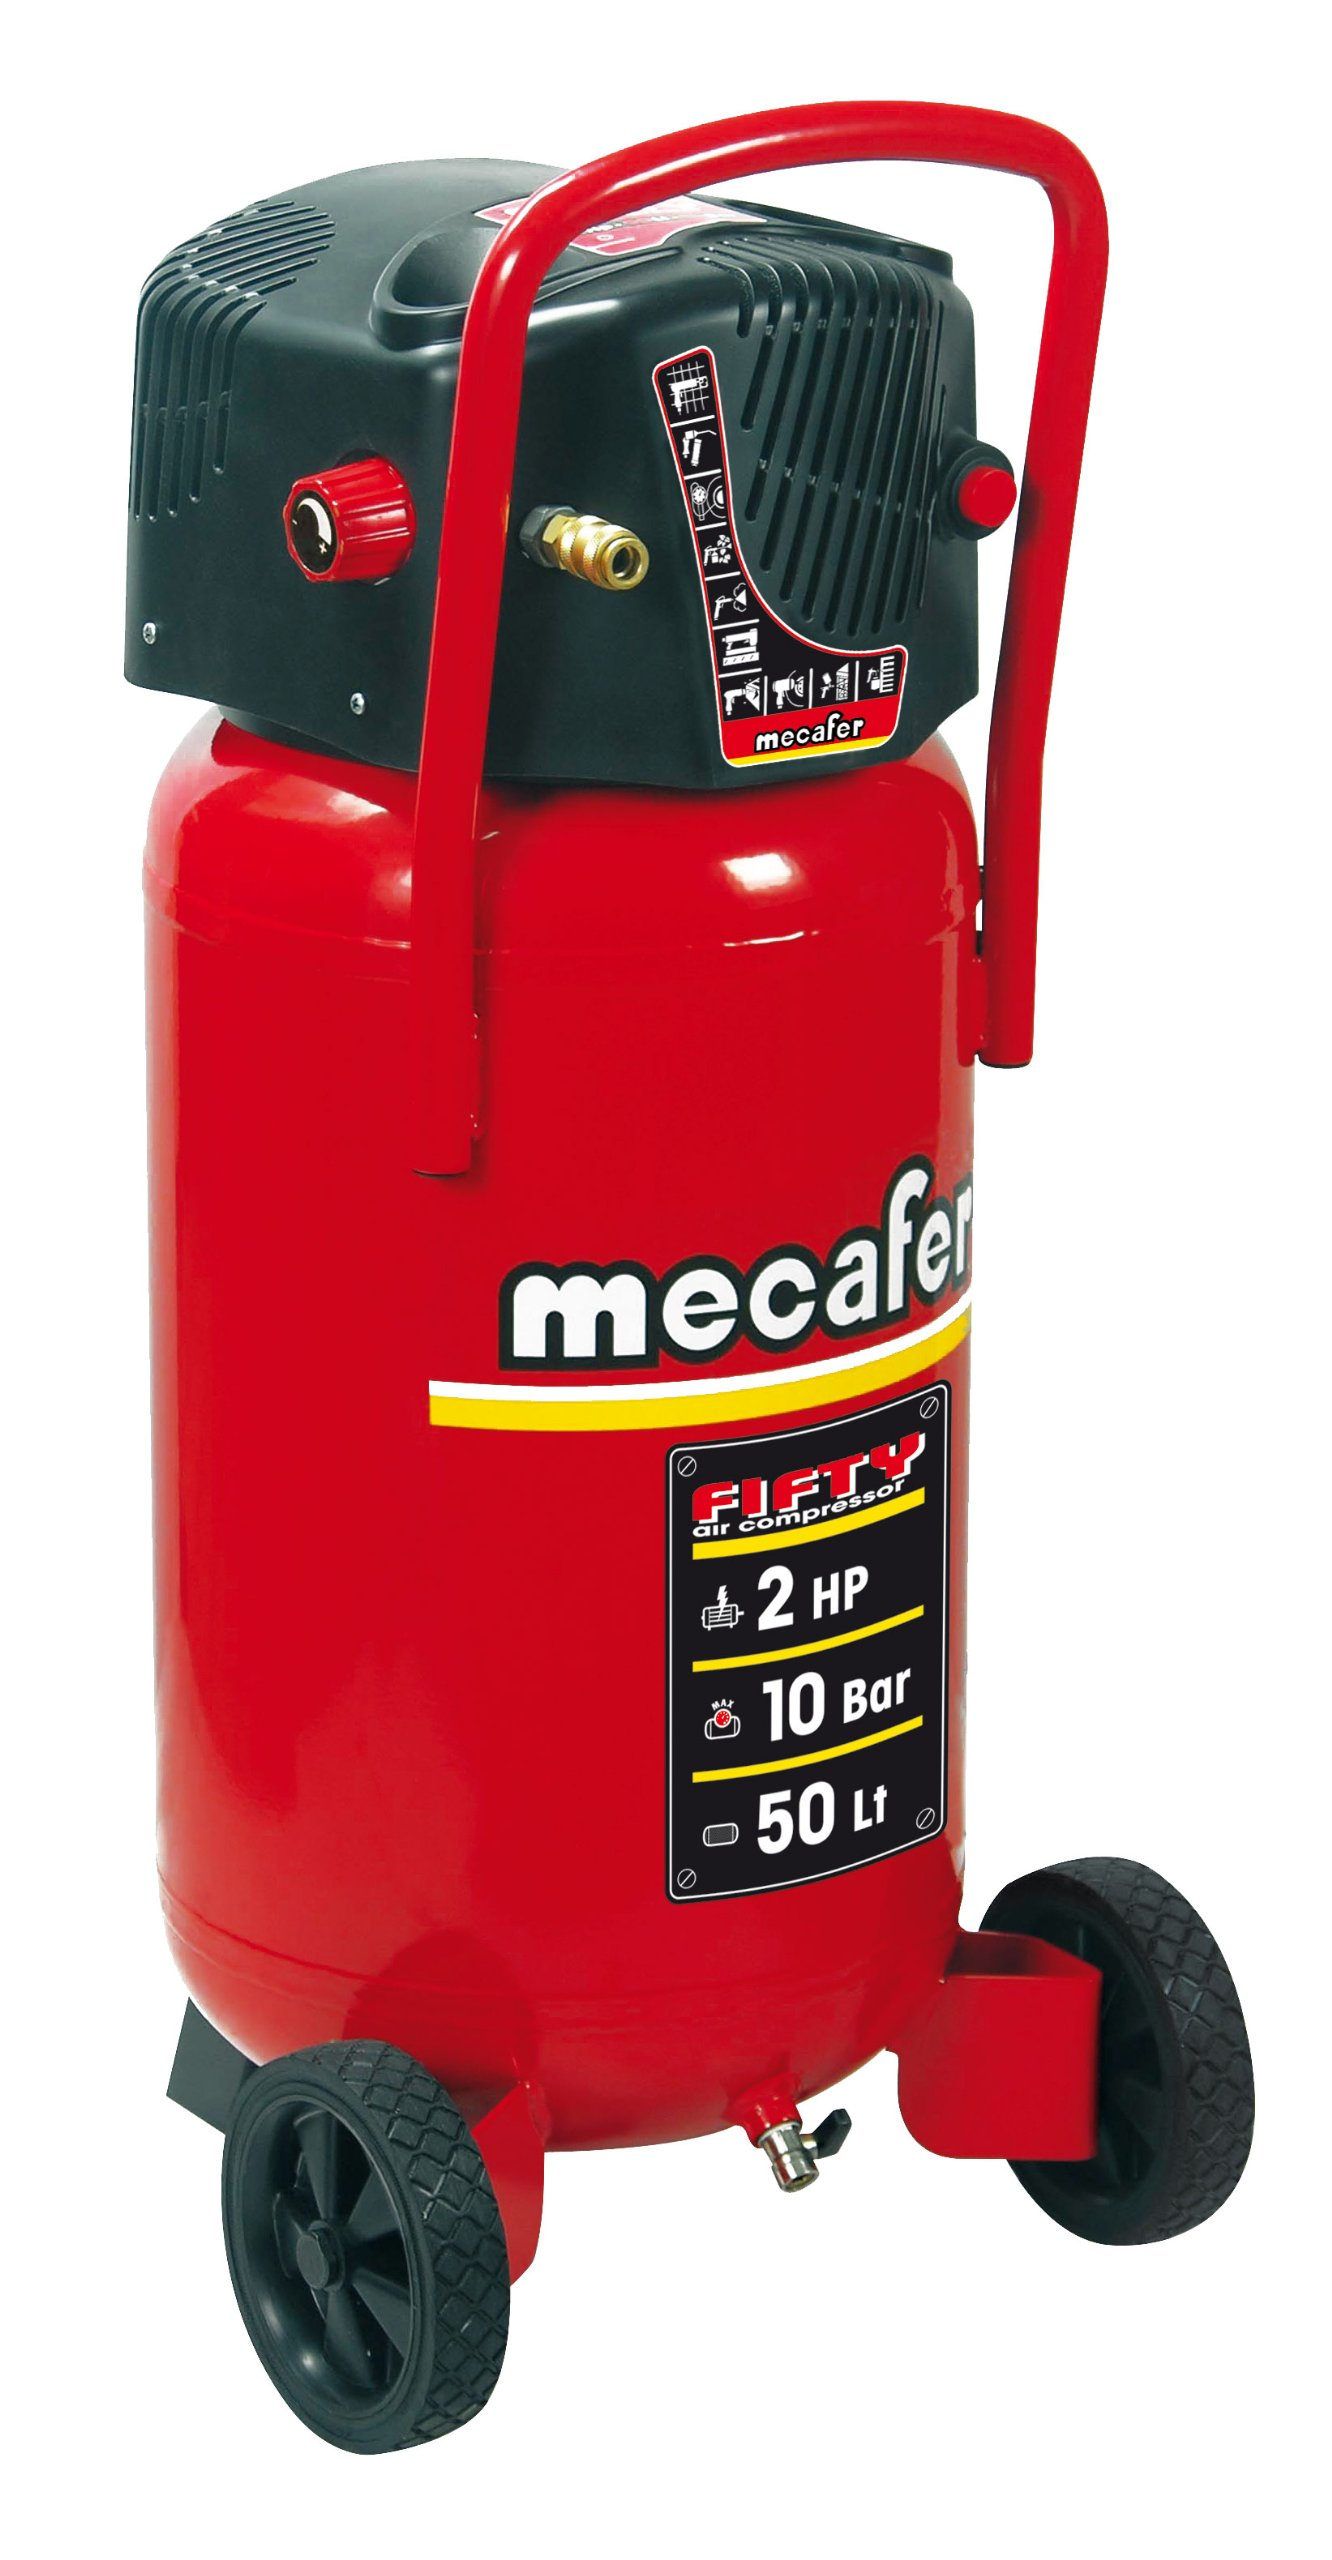 Mecafer 425090 - Compresor (50 L) product image